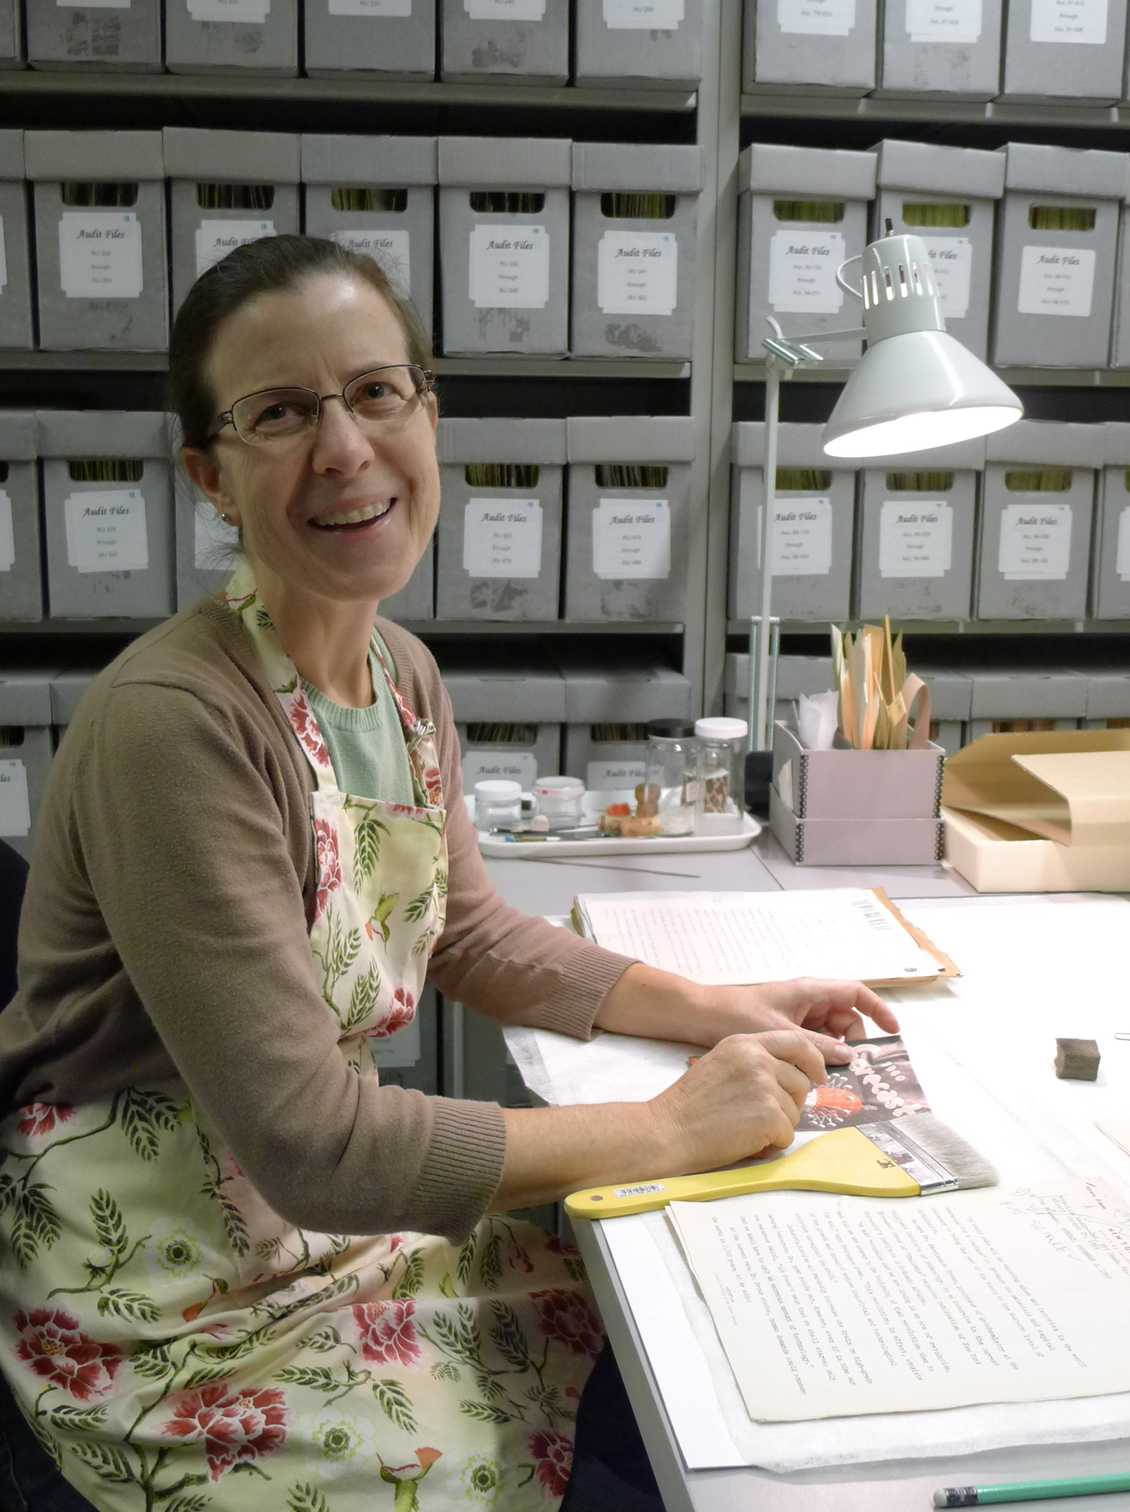 A person sits at a desk and smiles. Manuscript boxes are in the background.